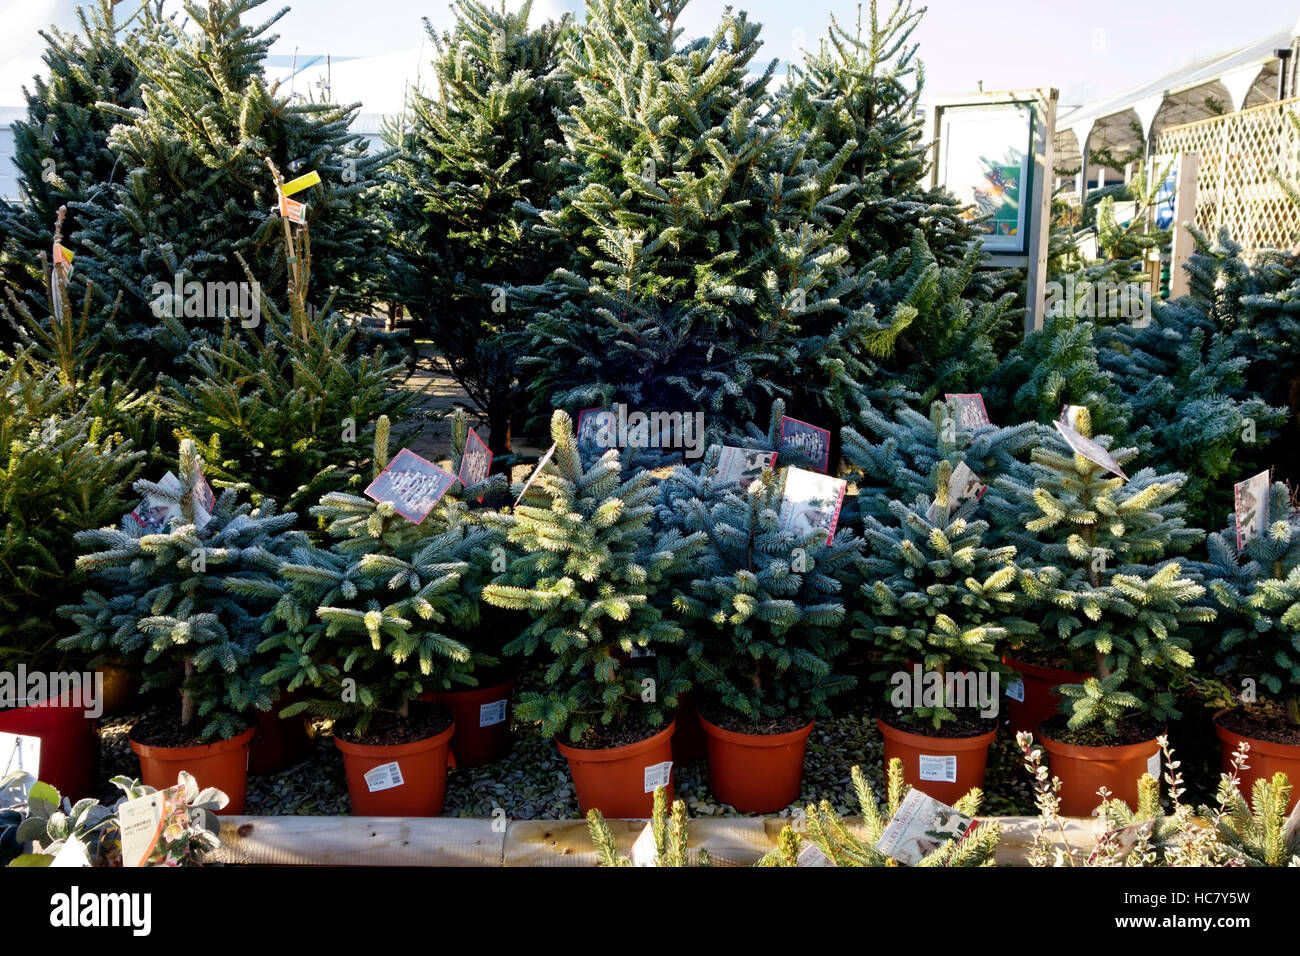 Super Blue Spruce & Norway Spruce Christmas Trees For Sale at Whitehall Garden Centre near Lacock in Wiltshire, - Stock Image